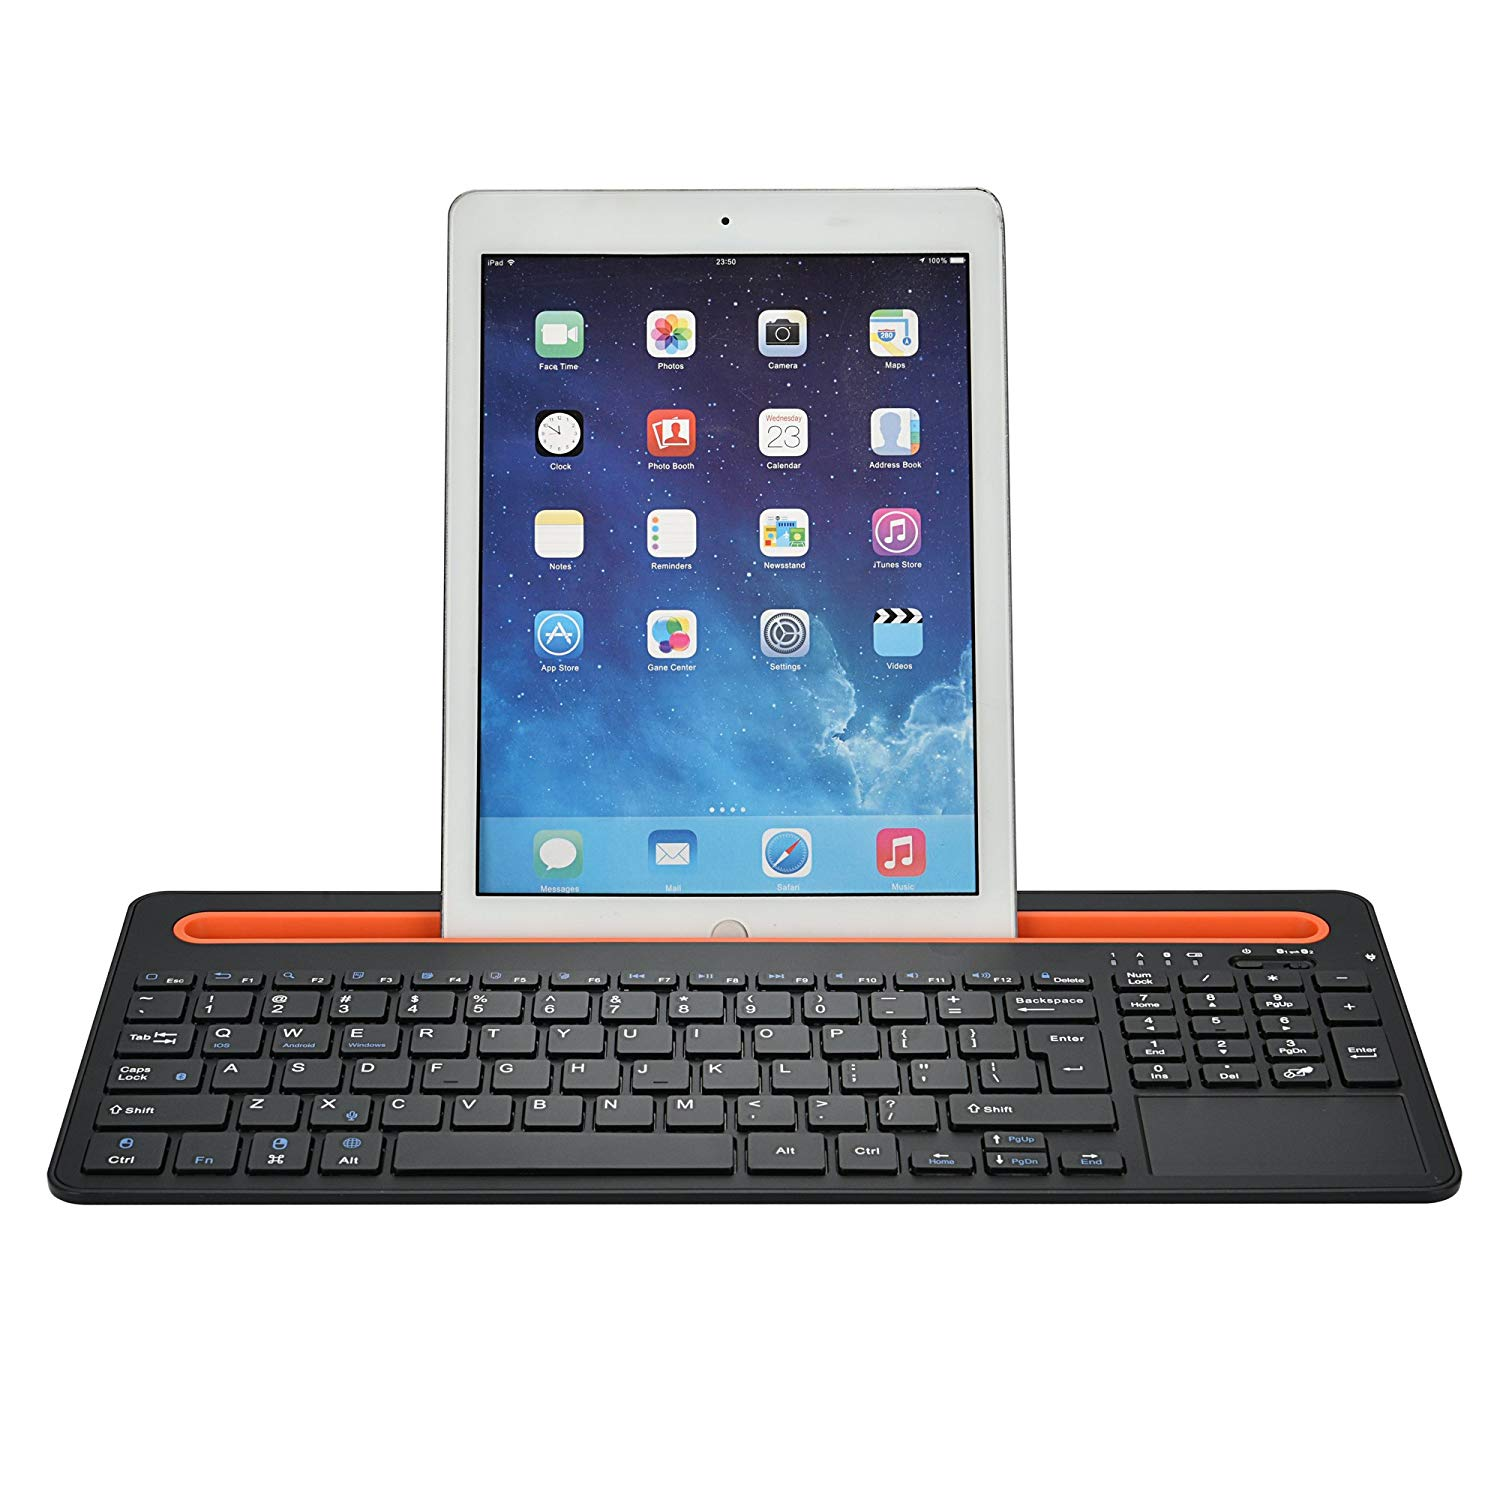 Bluetooth Keyboard With Built In Multi Touch Touchpad Mcsaite Full Size Keyboard Rechargeable Battery For Windows And Androids Tablet Galaxy Tabs Smartphones Black